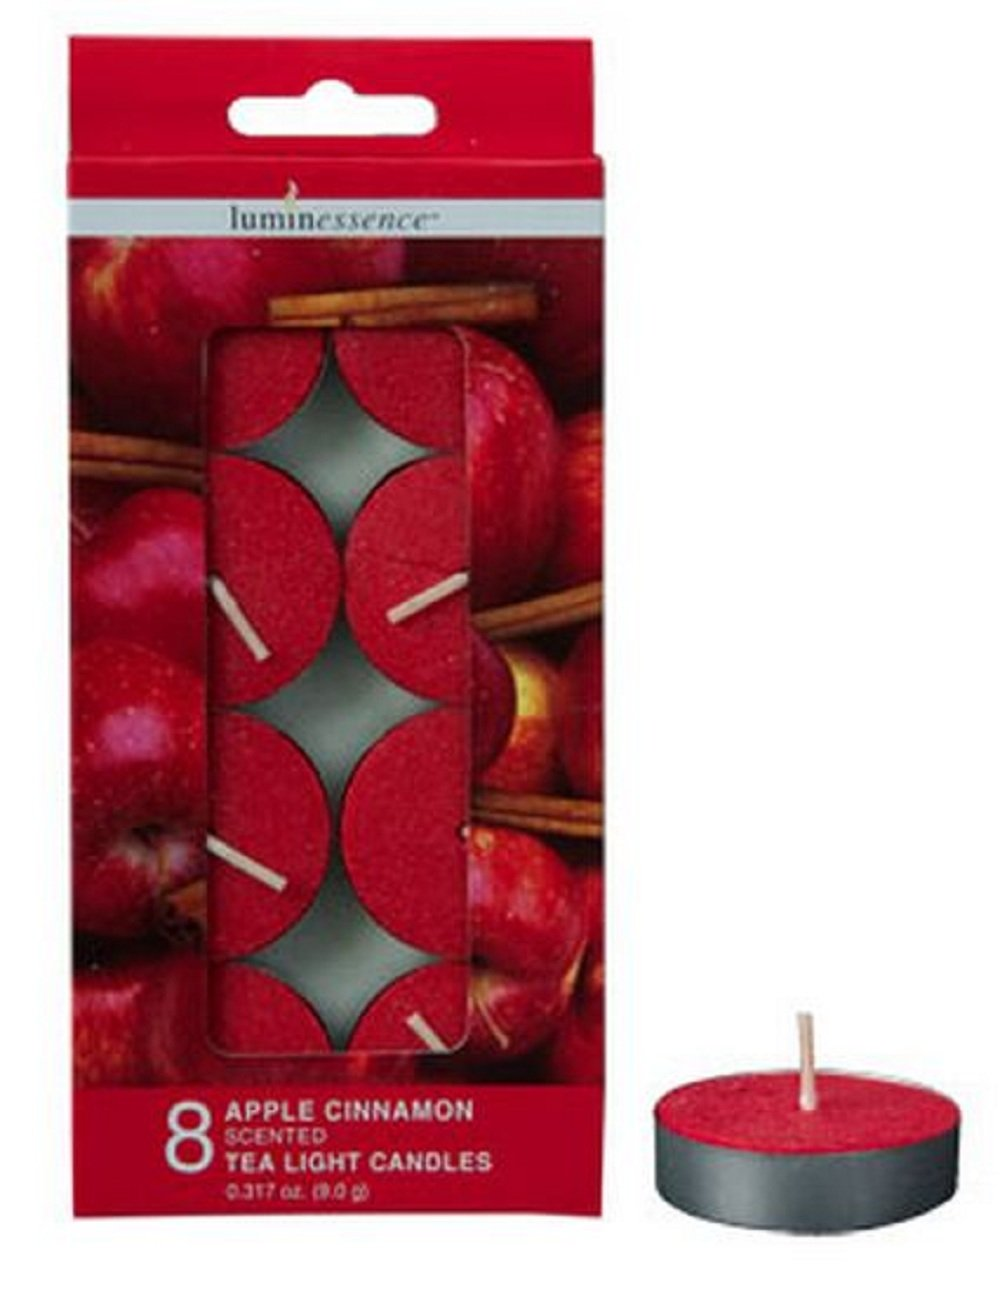 Vanilla 3-pack Assorted Scented Tea Light Candles 24-ct Apple Cinnamon and Black Cherry